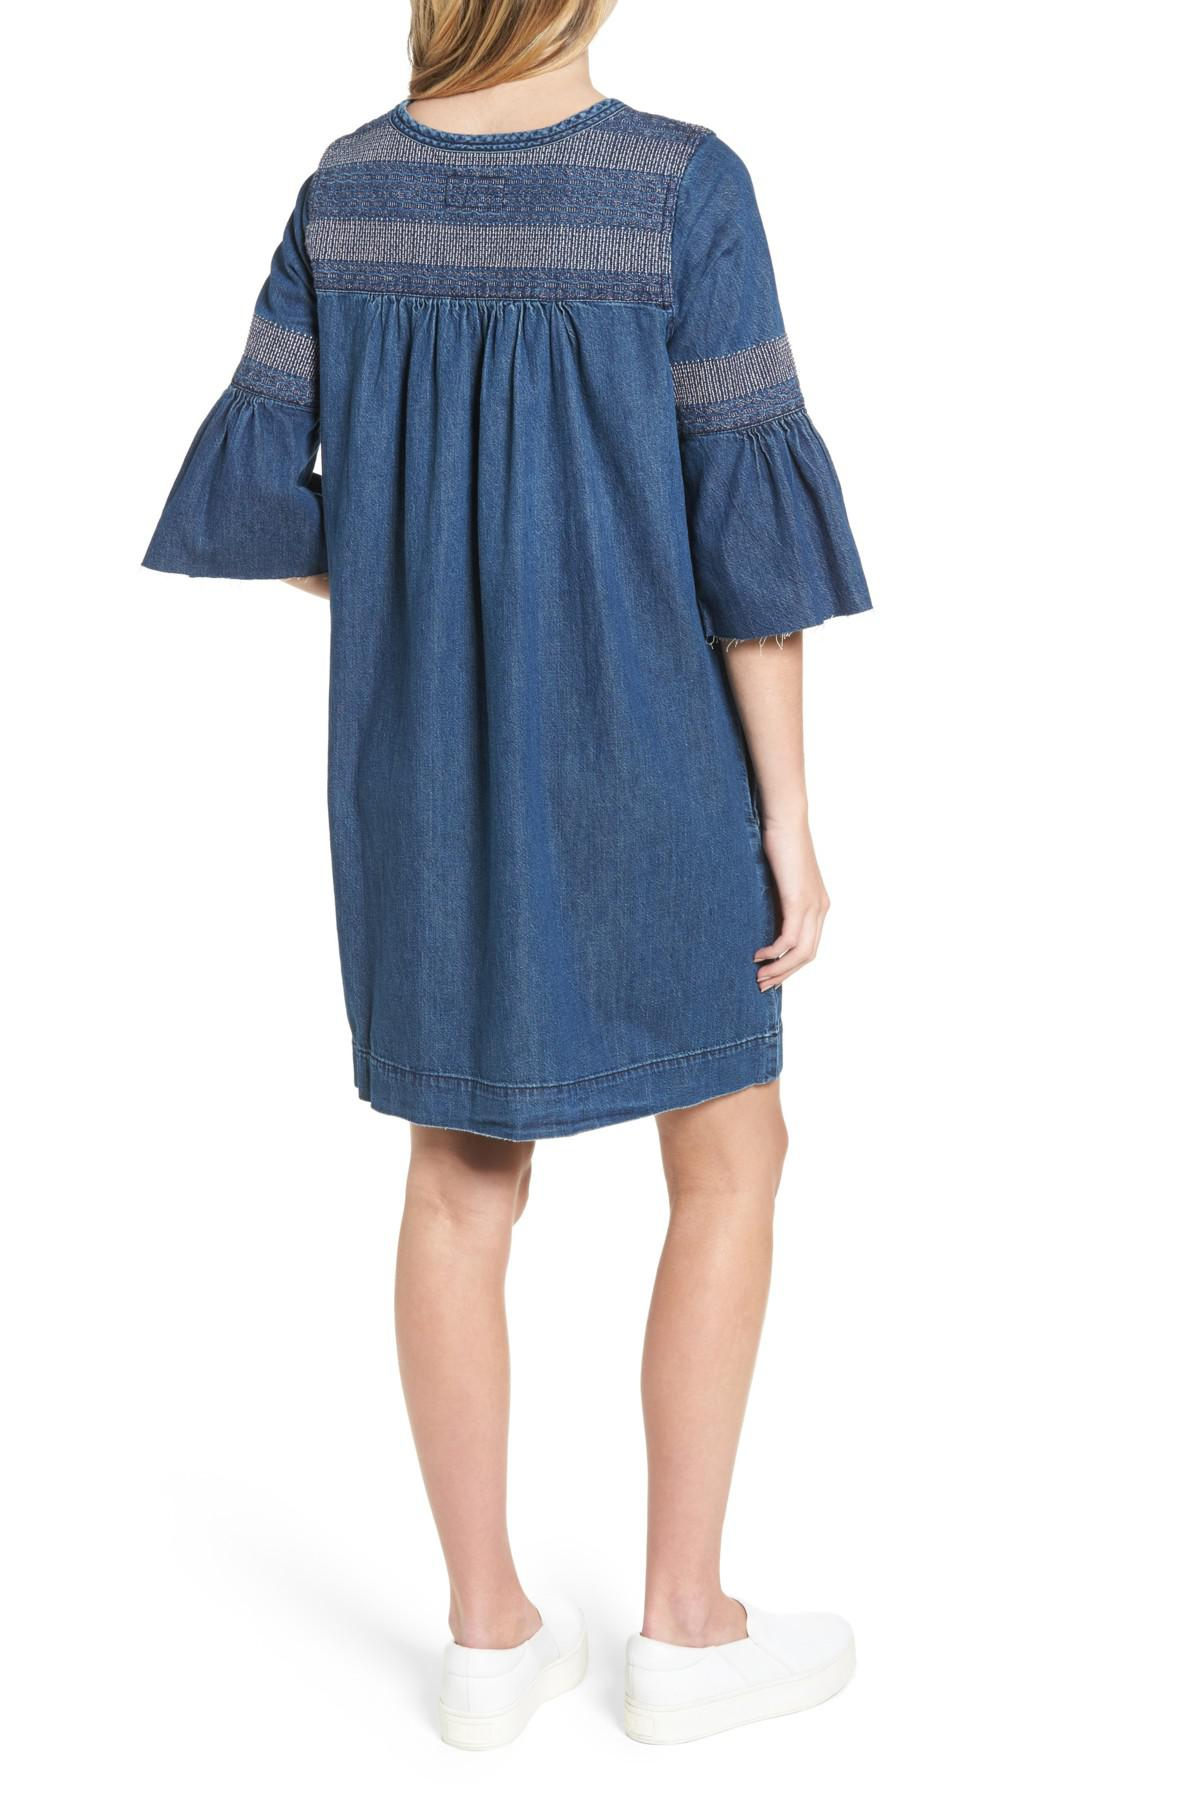 ddab825442 Lyst - Current Elliott The Abigail Embroidered Dress in Blue